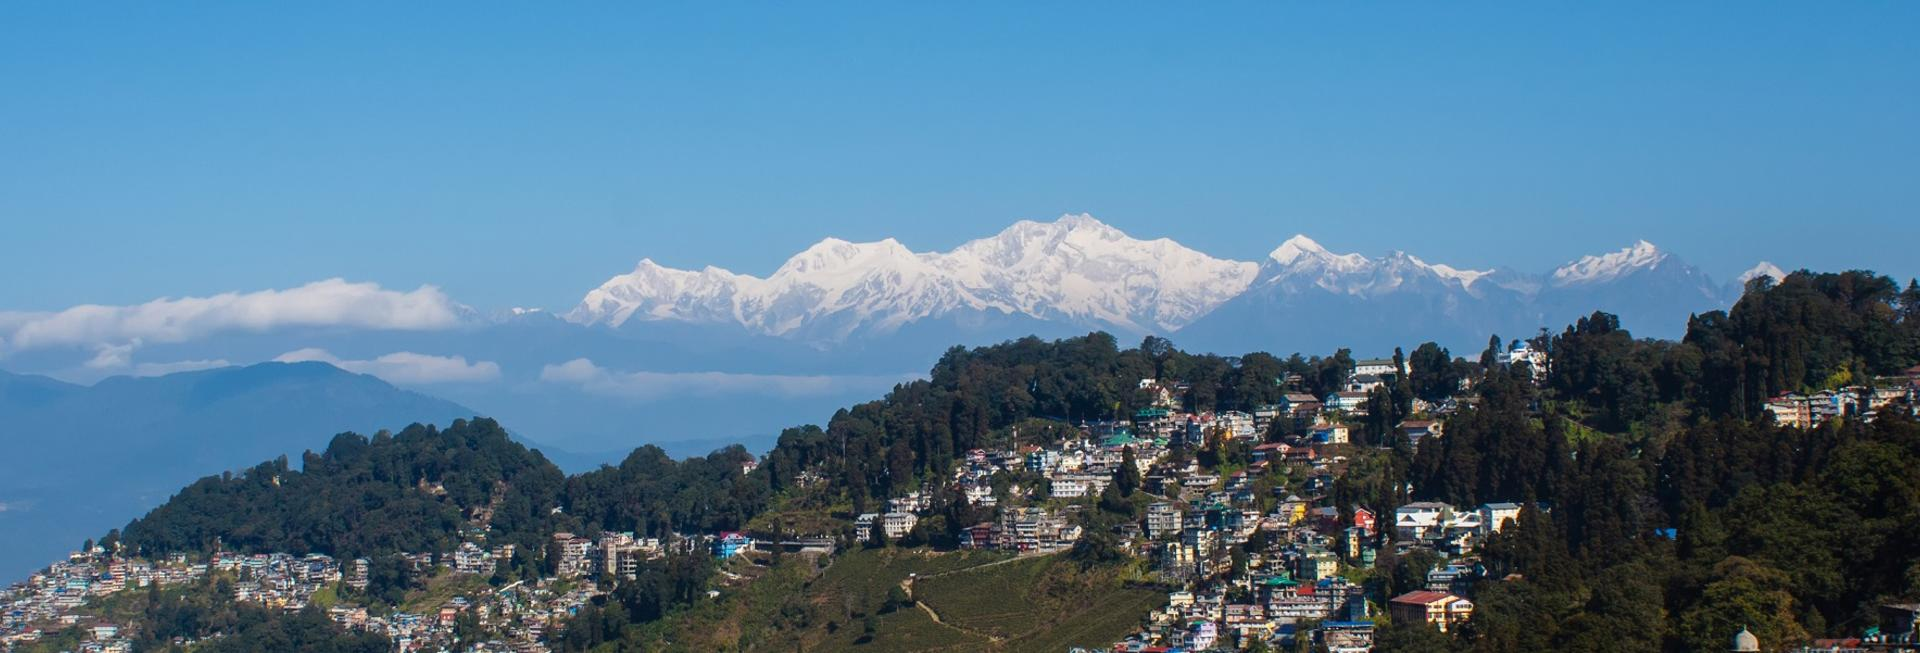 View over Darjeeling